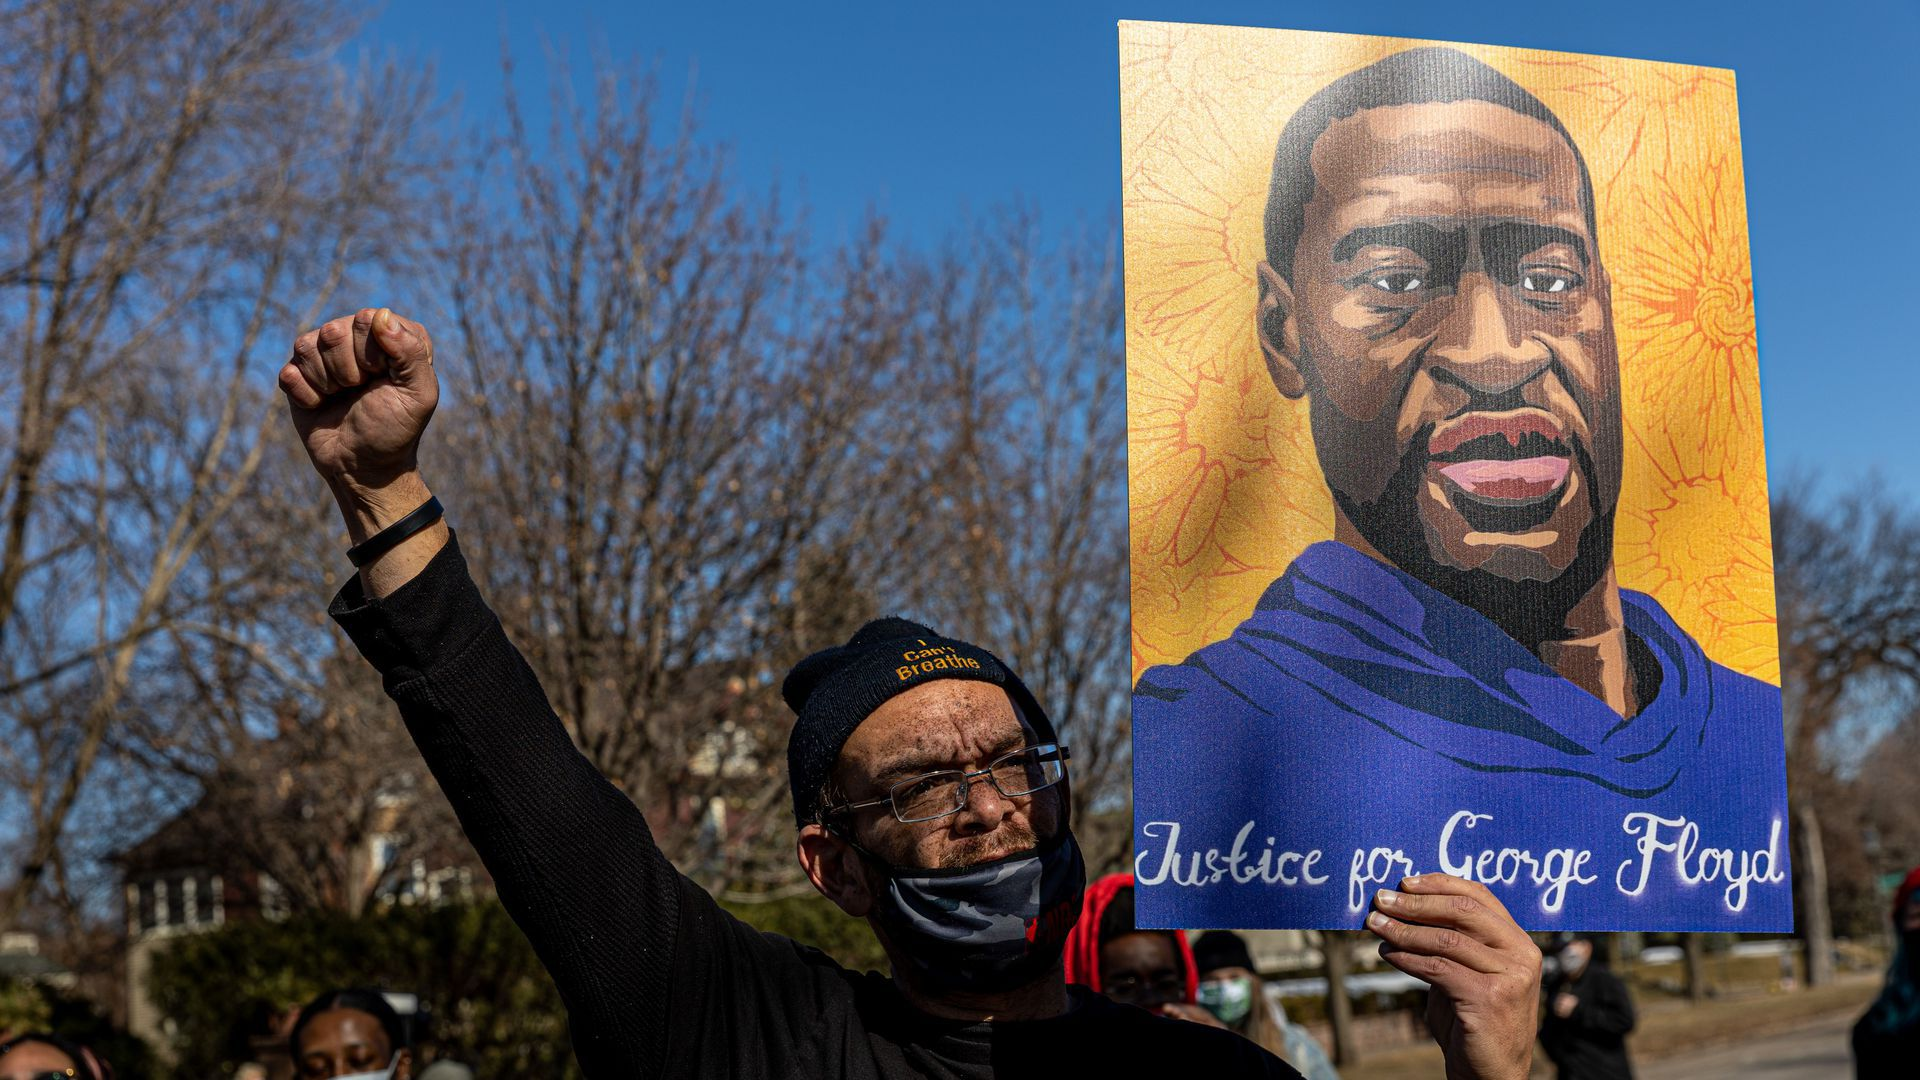 Chaz Neal, a Redwing community activist, outside the Minnesota Governor's residence during a protest in support of George Floyd in St.Paul, Minnesota, on March 6.